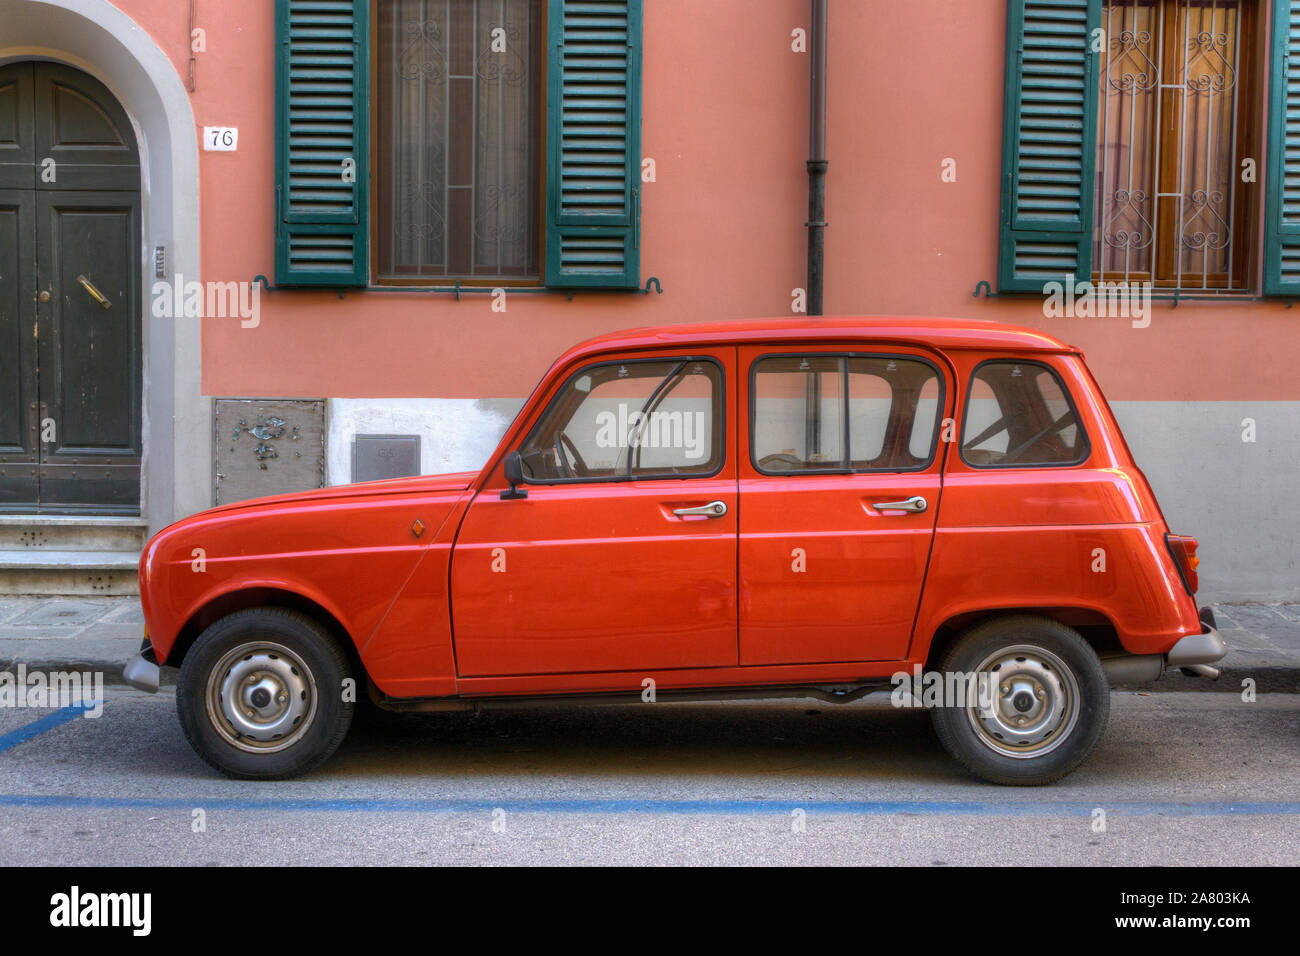 Red Renault 4 Car Parked Street Pink Colored Building Stock Photo Alamy